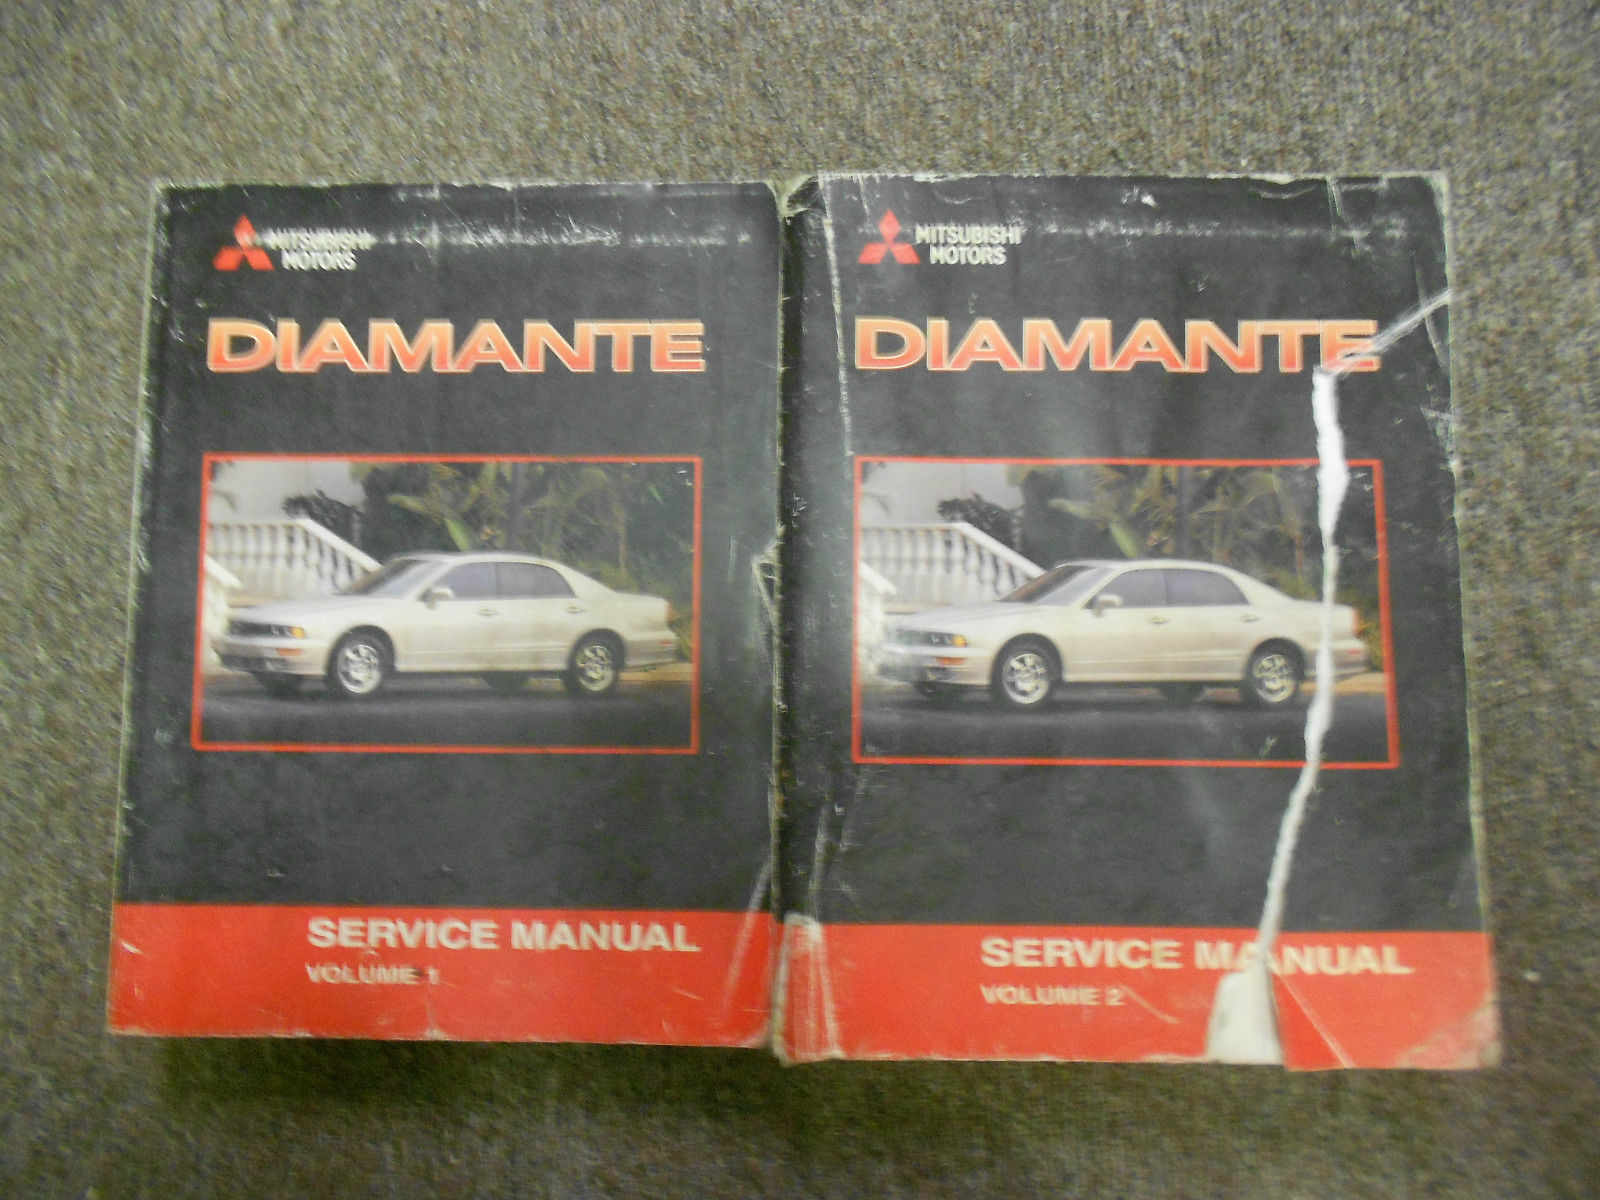 Primary image for 2001 MITSUBISHI Diamante Service Repair Shop Manual FACTORY OEM BOOK 01 SET X